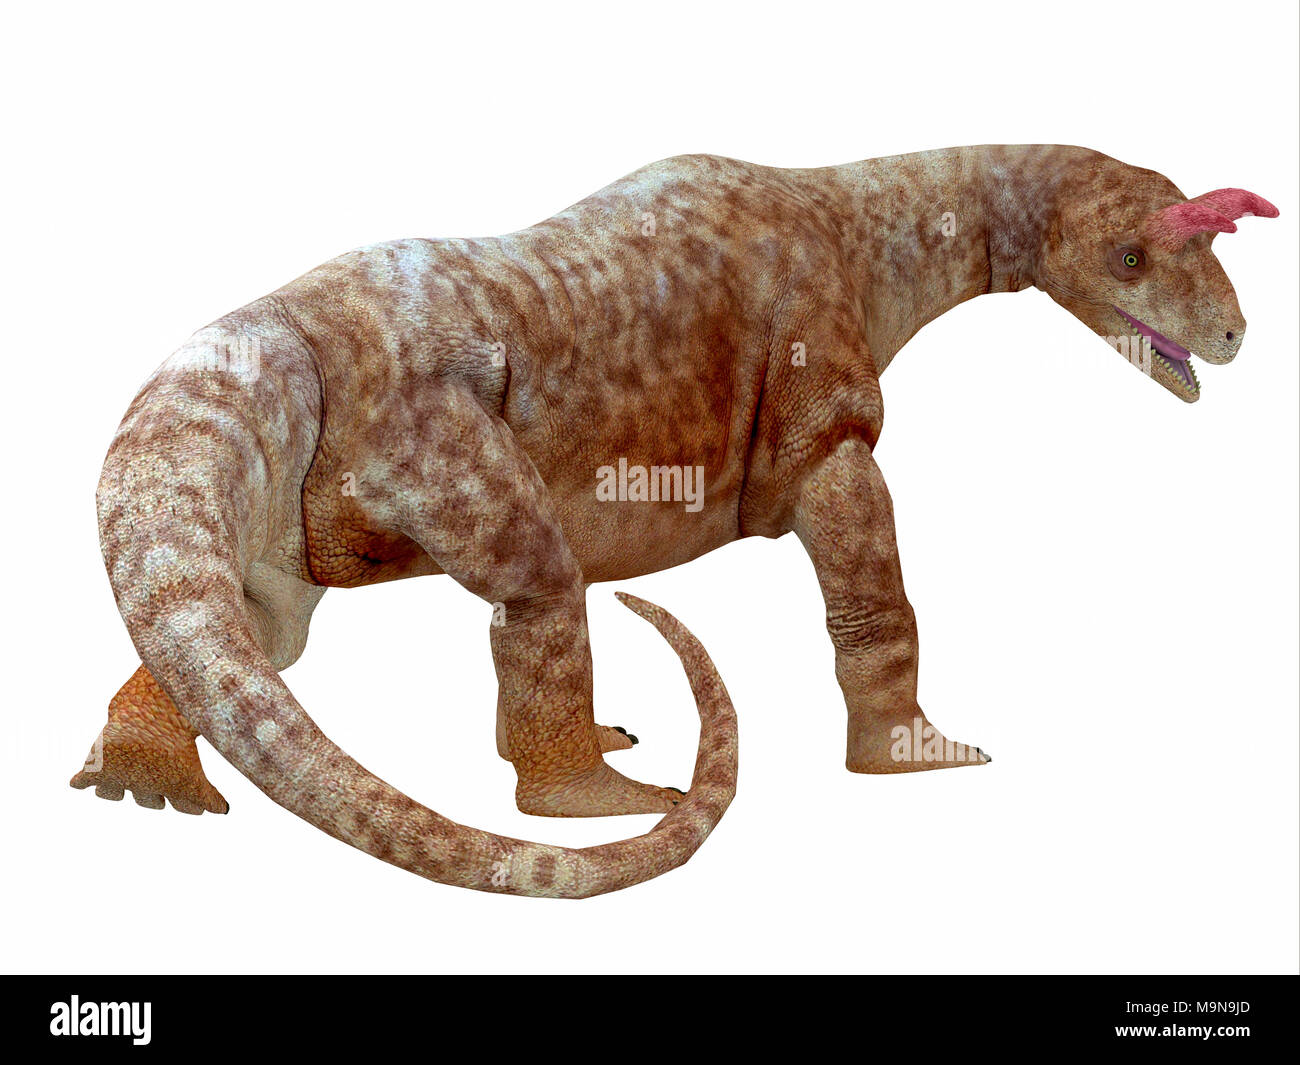 Shringasaurus Dinosaur Tail - Shringasaurus was a herbivorous sauropod dinosaur that lived in India in the Triassic Period. - Stock Image